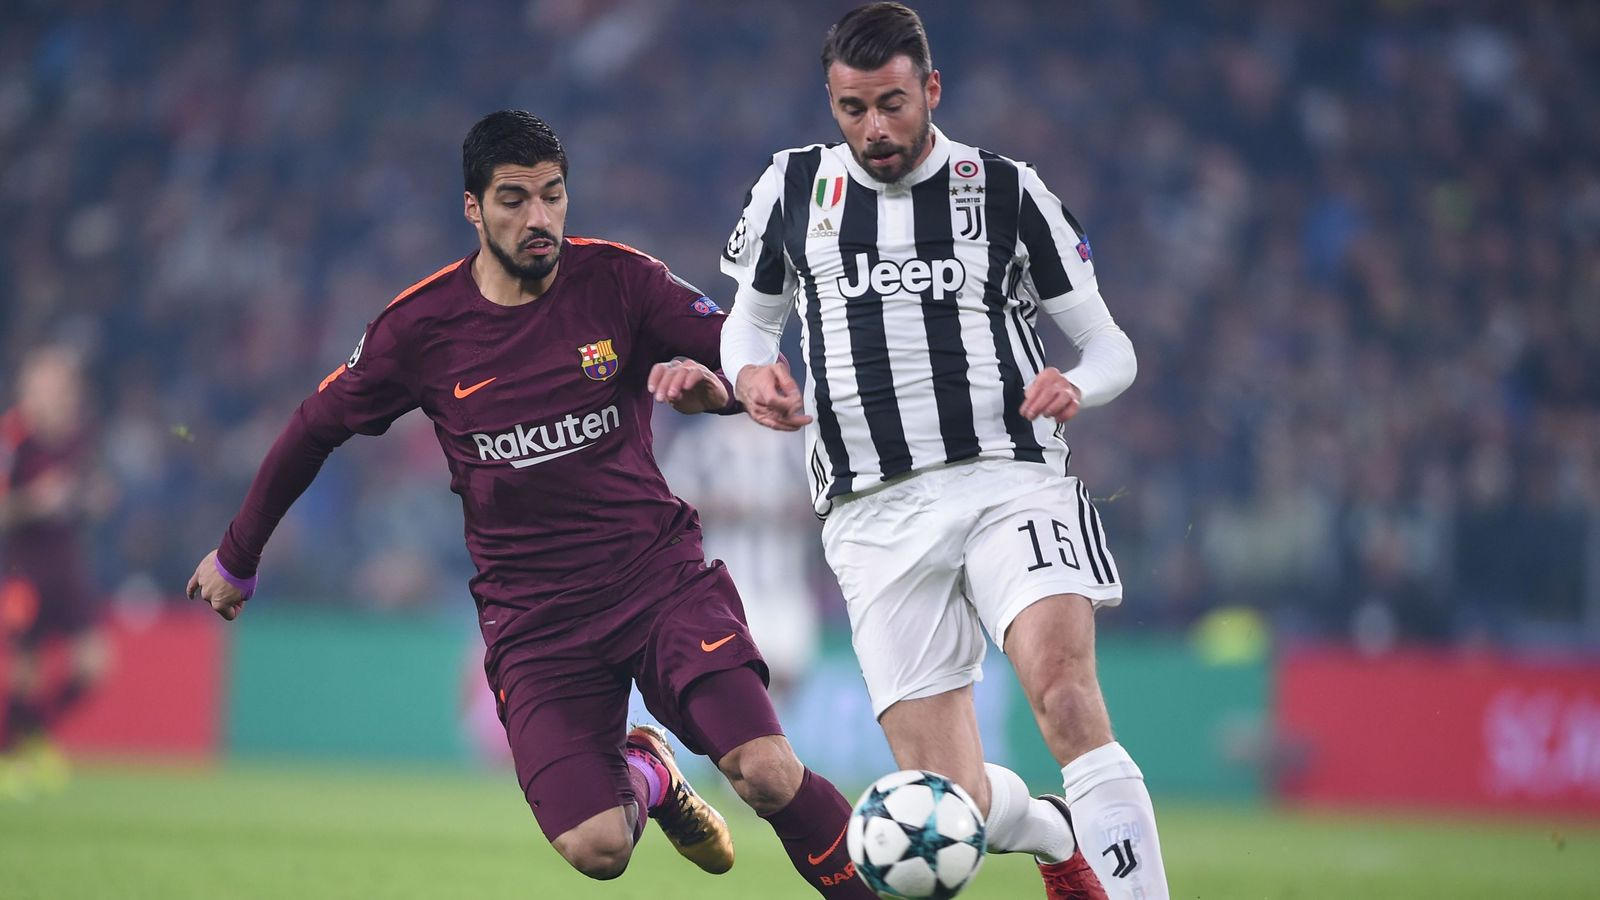 Juventus 0 - 0 Barcelona - Match Report & Highlights